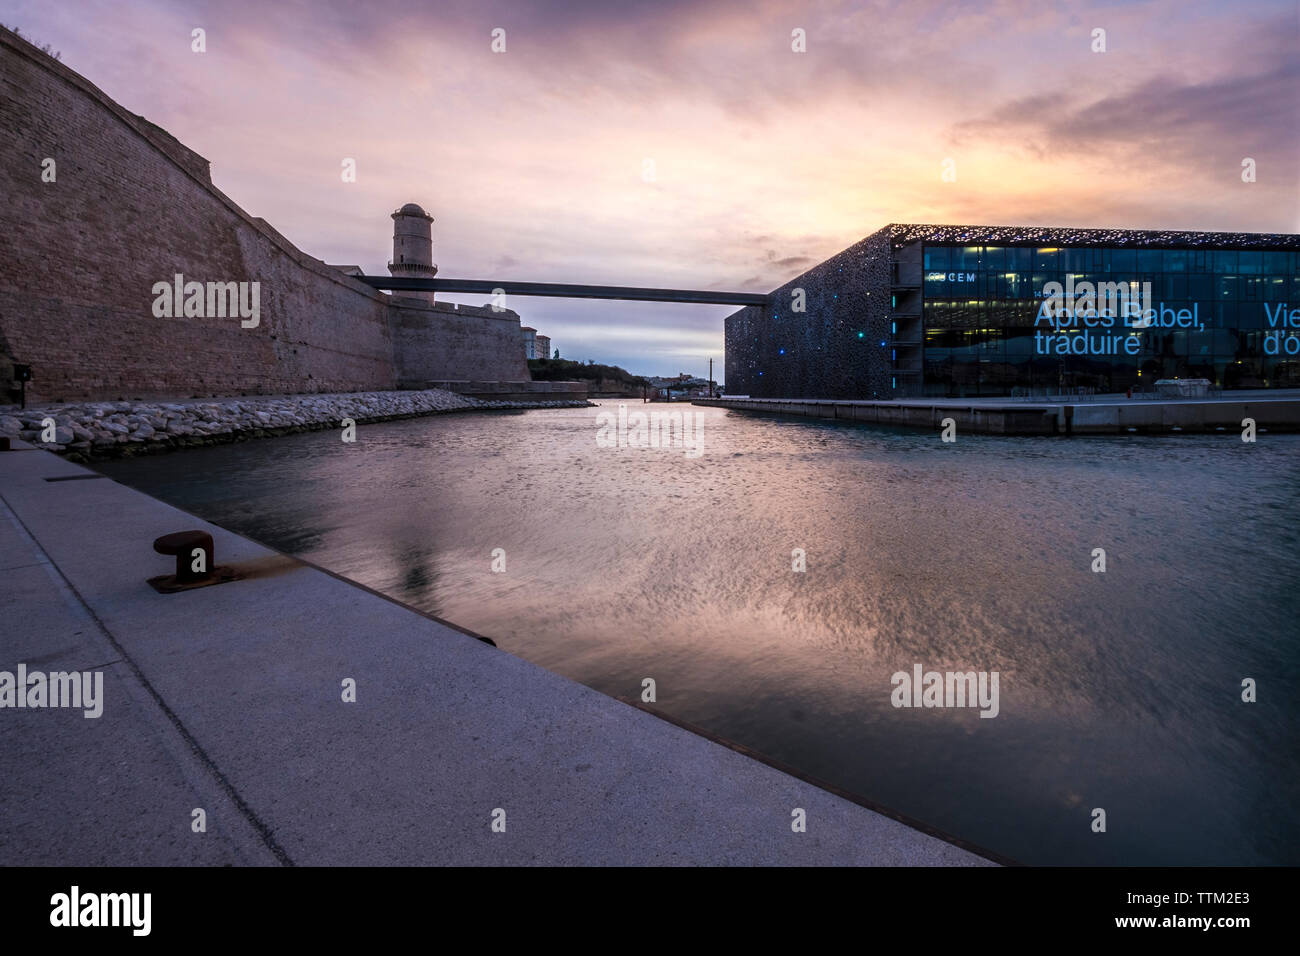 Museum of European and Mediterranean Civilisations with Fort Saint jean against sky during sunset - Stock Image